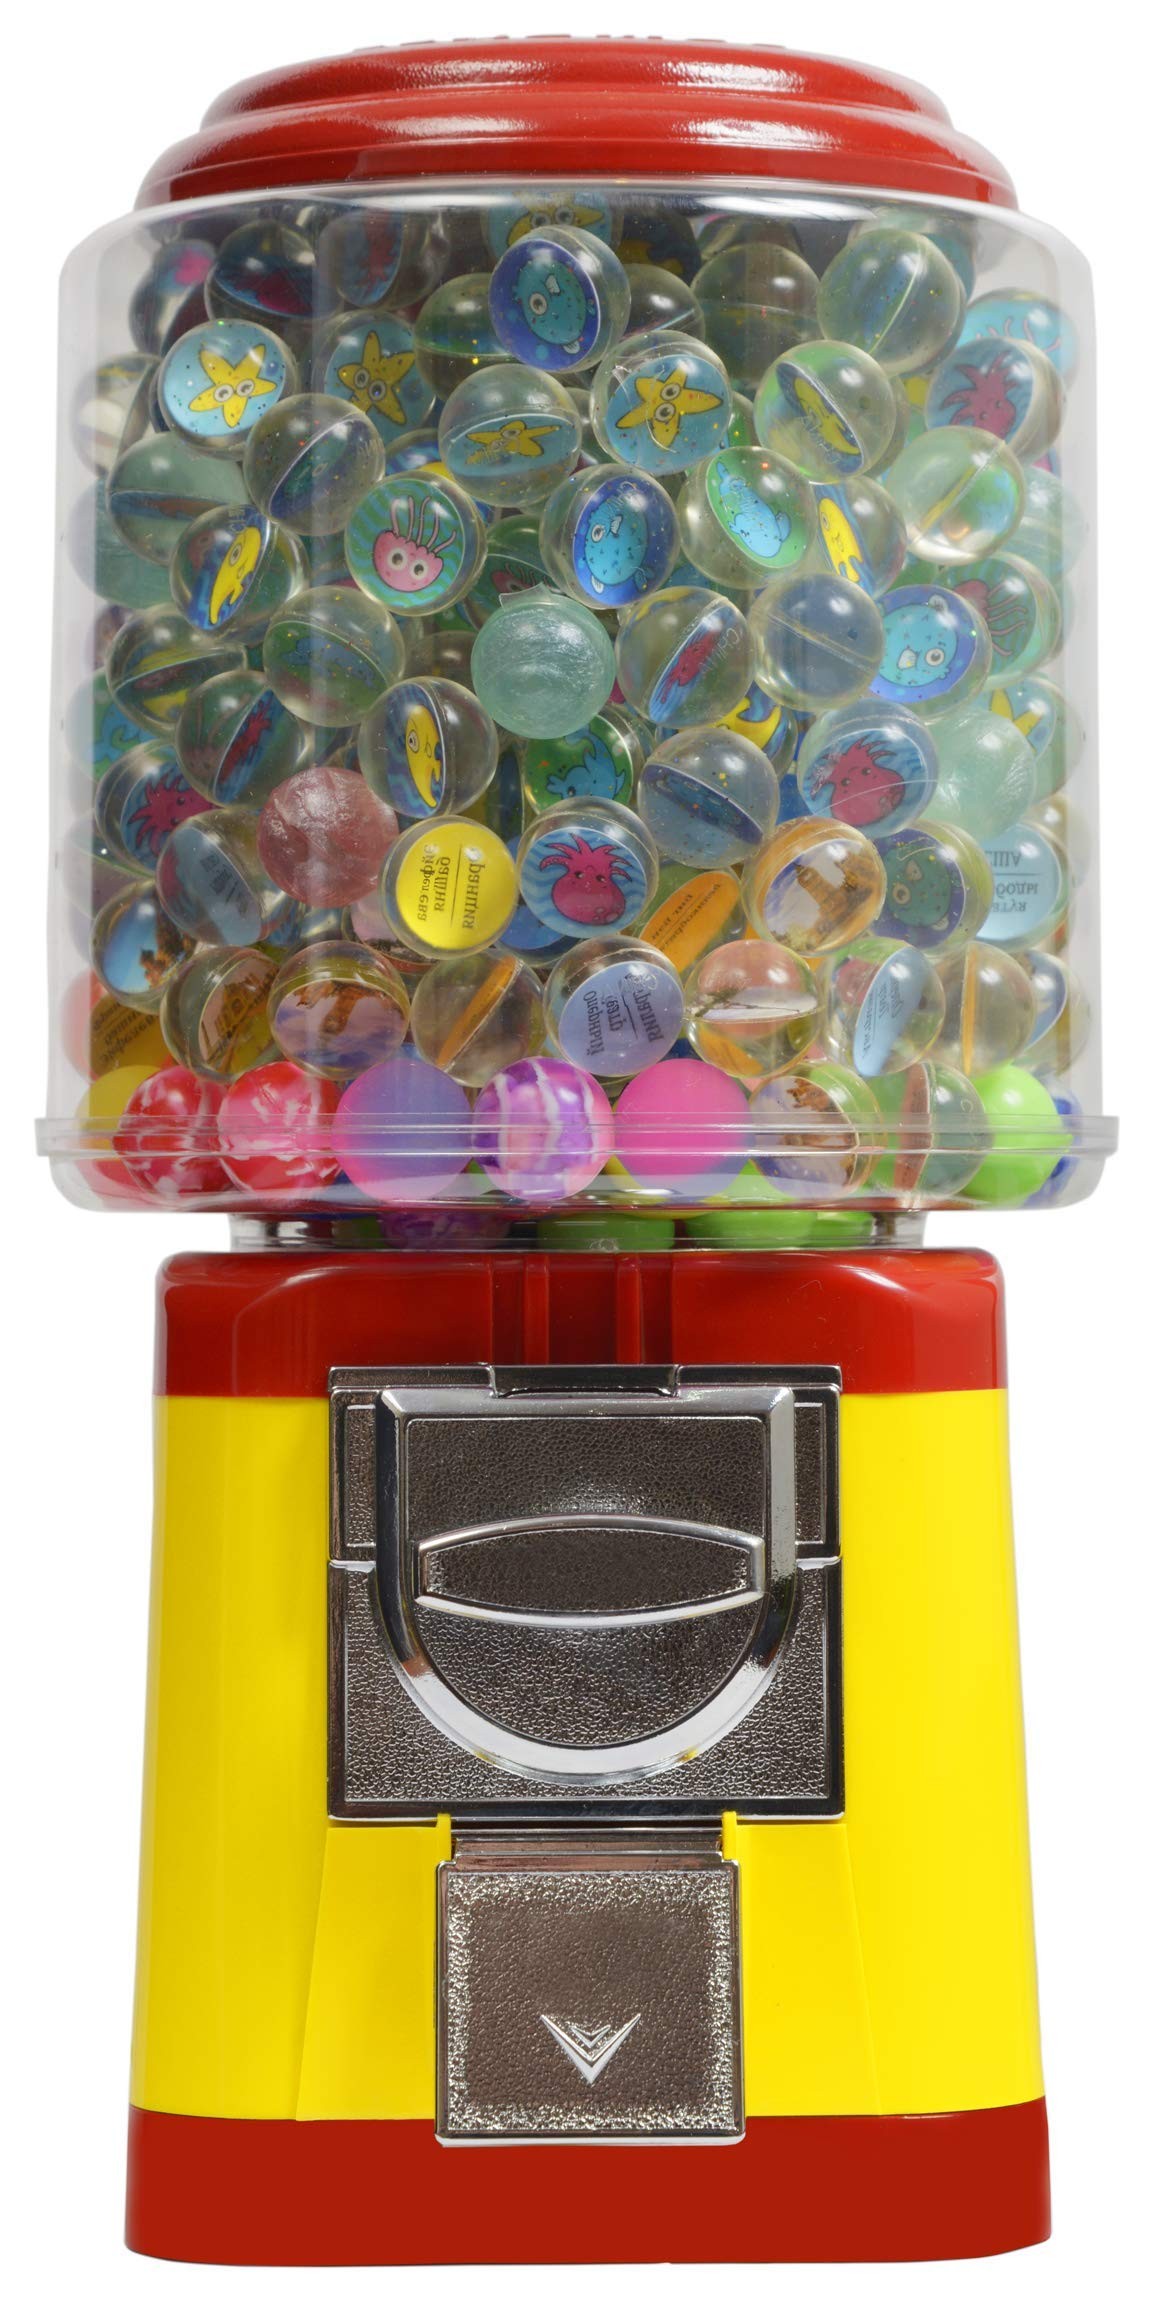 Gumball Vending Machine & Bouncy Balls Vending Machine & Toys Vending Machine & Capsule Vending Machine - Yellow Body & Red Trim - without stand by Global Gumball